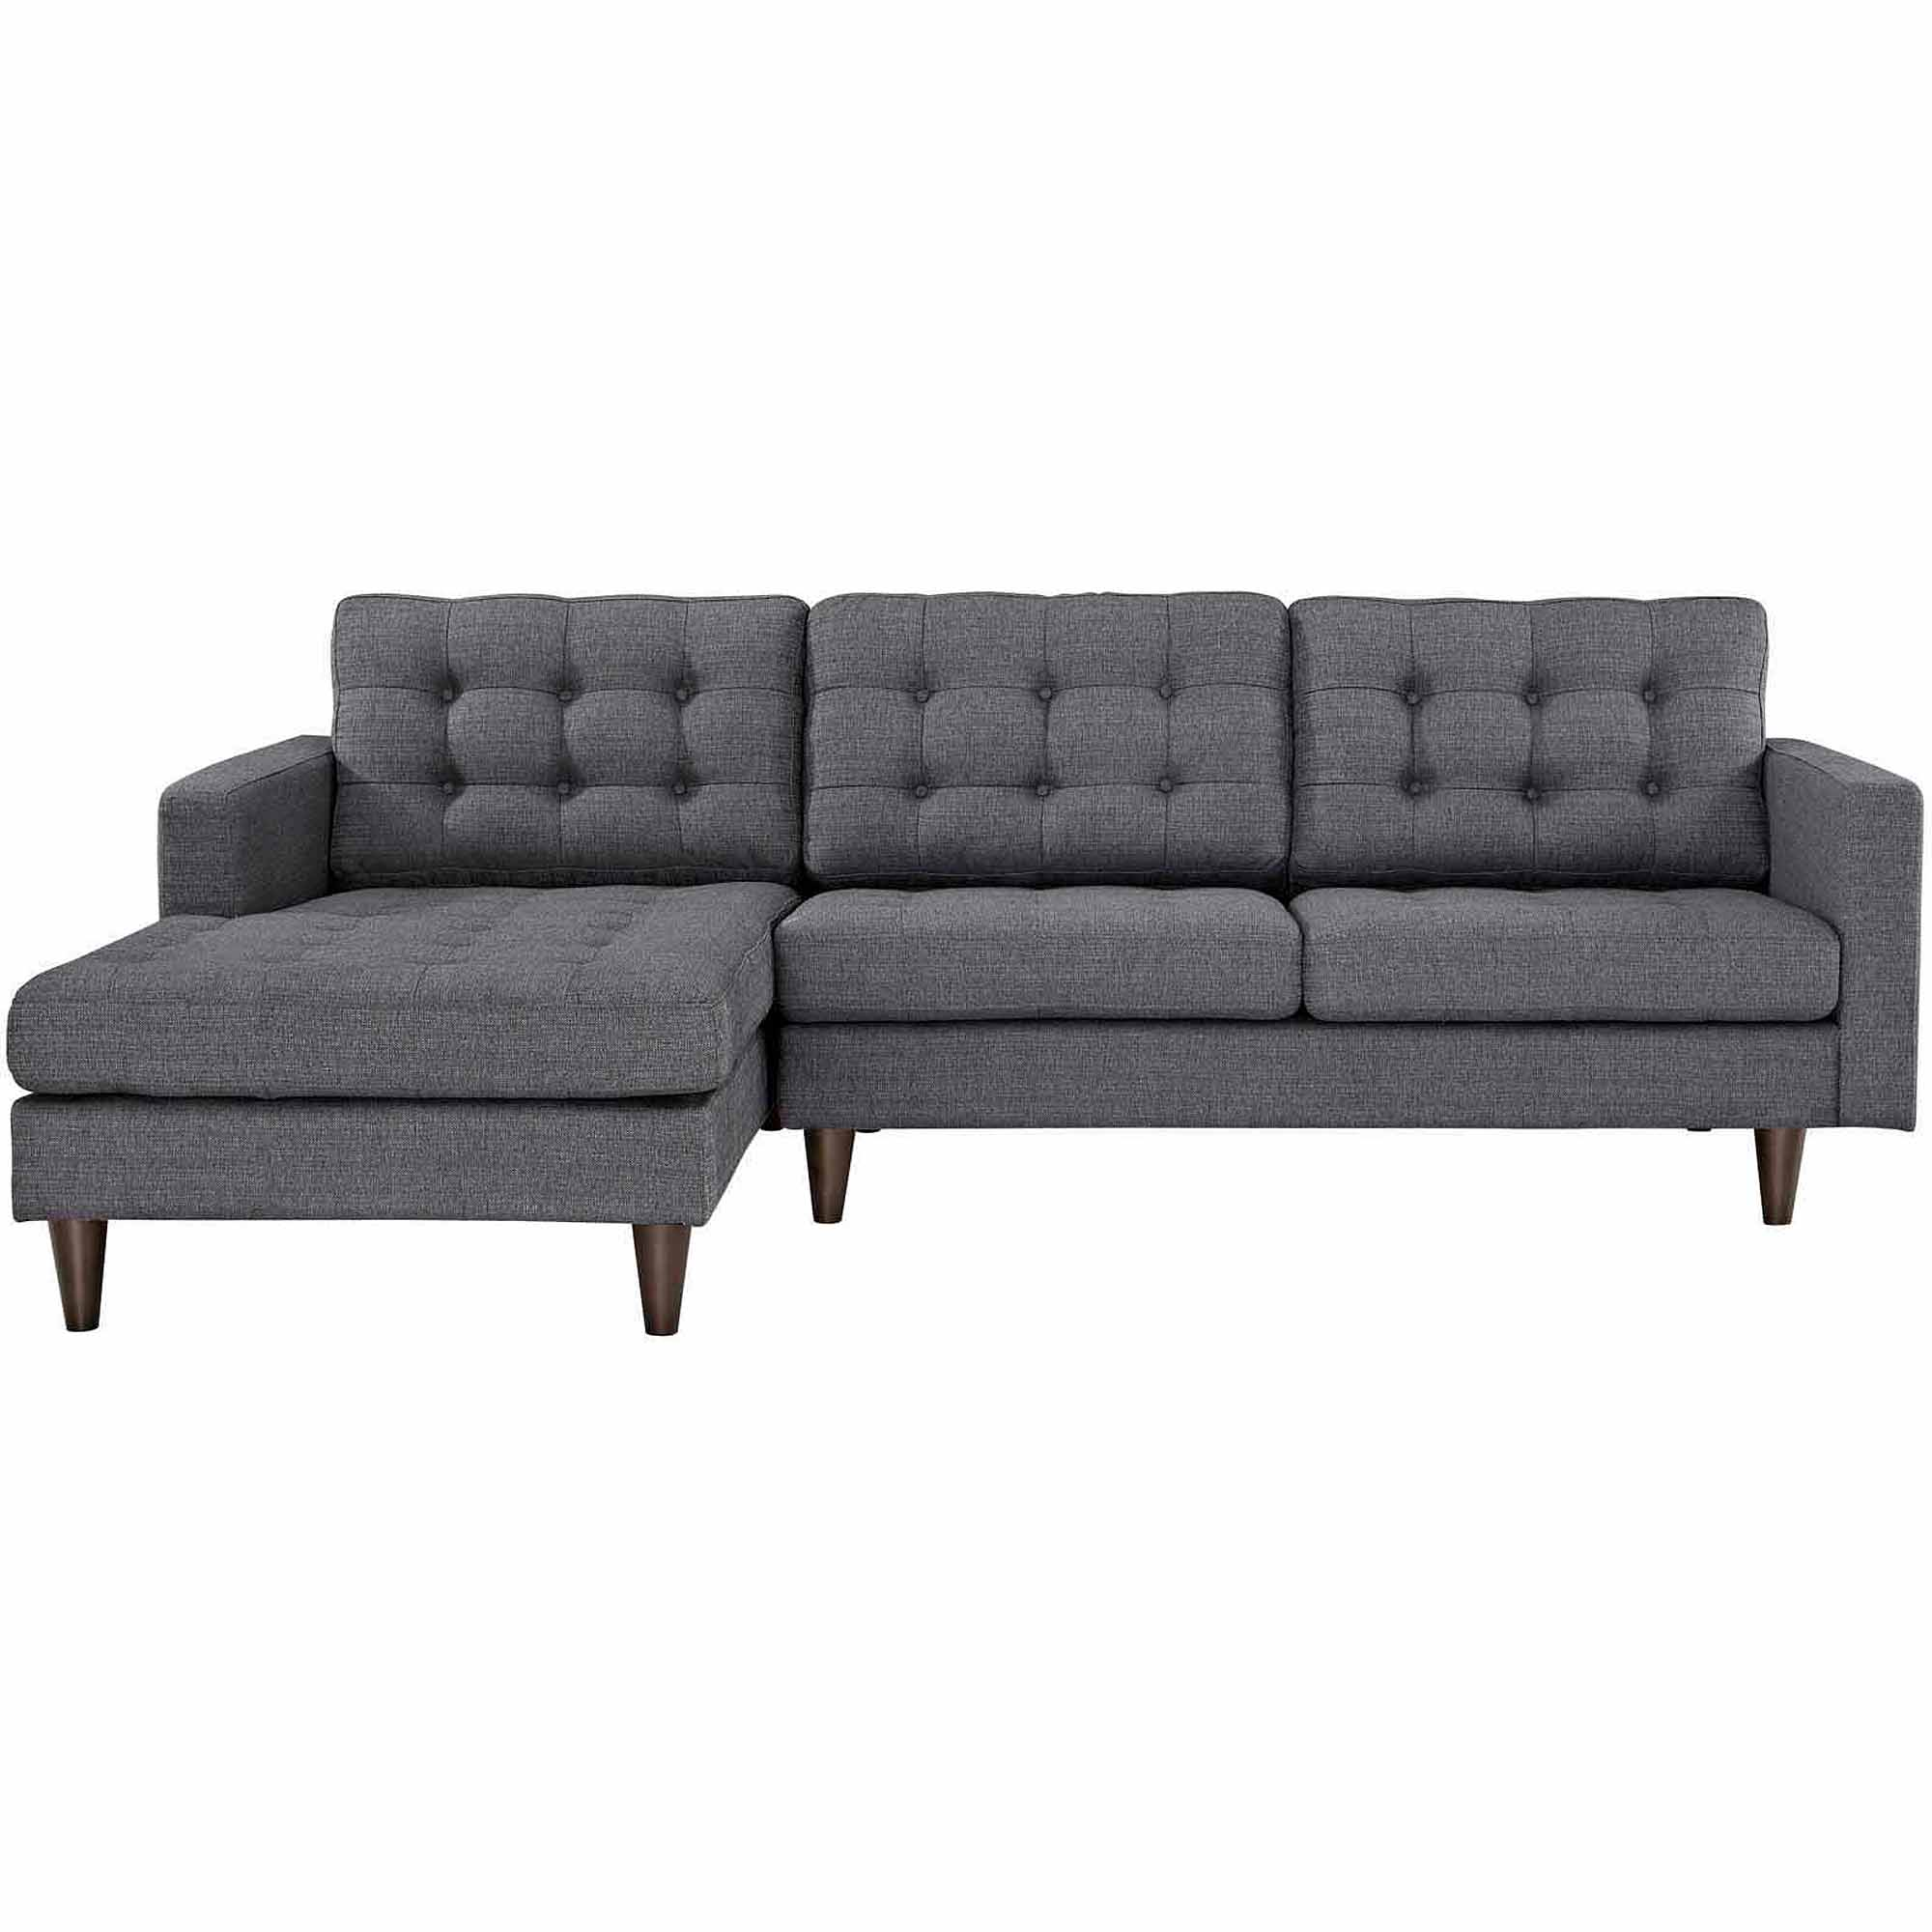 Modway Empress Left Arm Sectional Sofa Multiple Colors Walmart